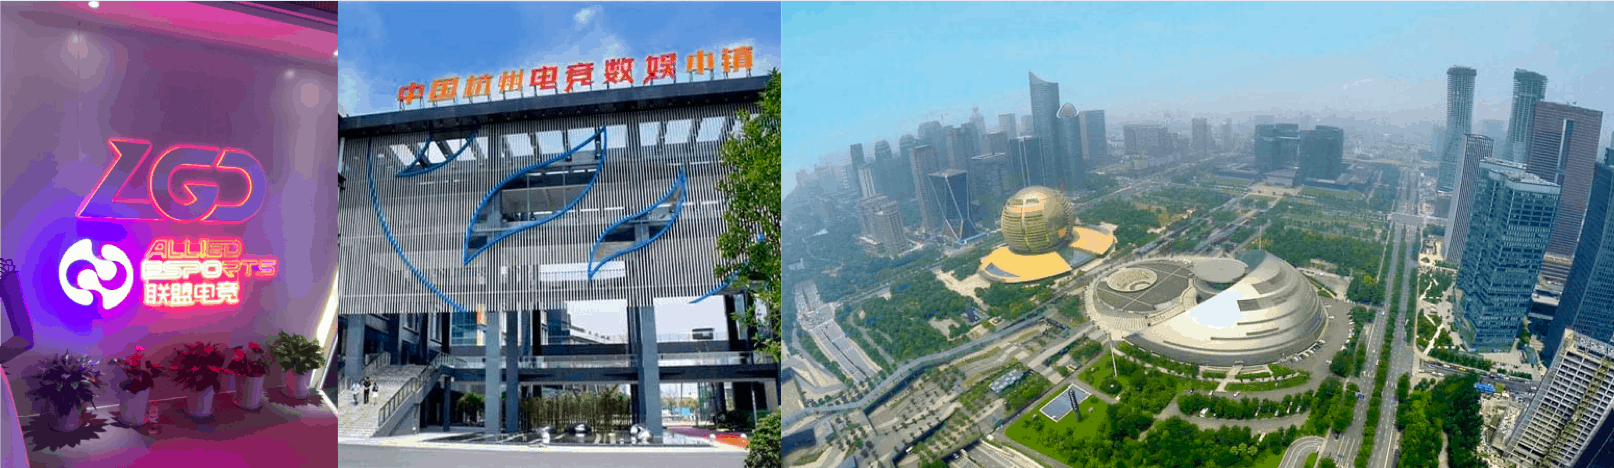 Hangzhou will host the 2022 Asia Games which is expected to include E-Sports for the first time!